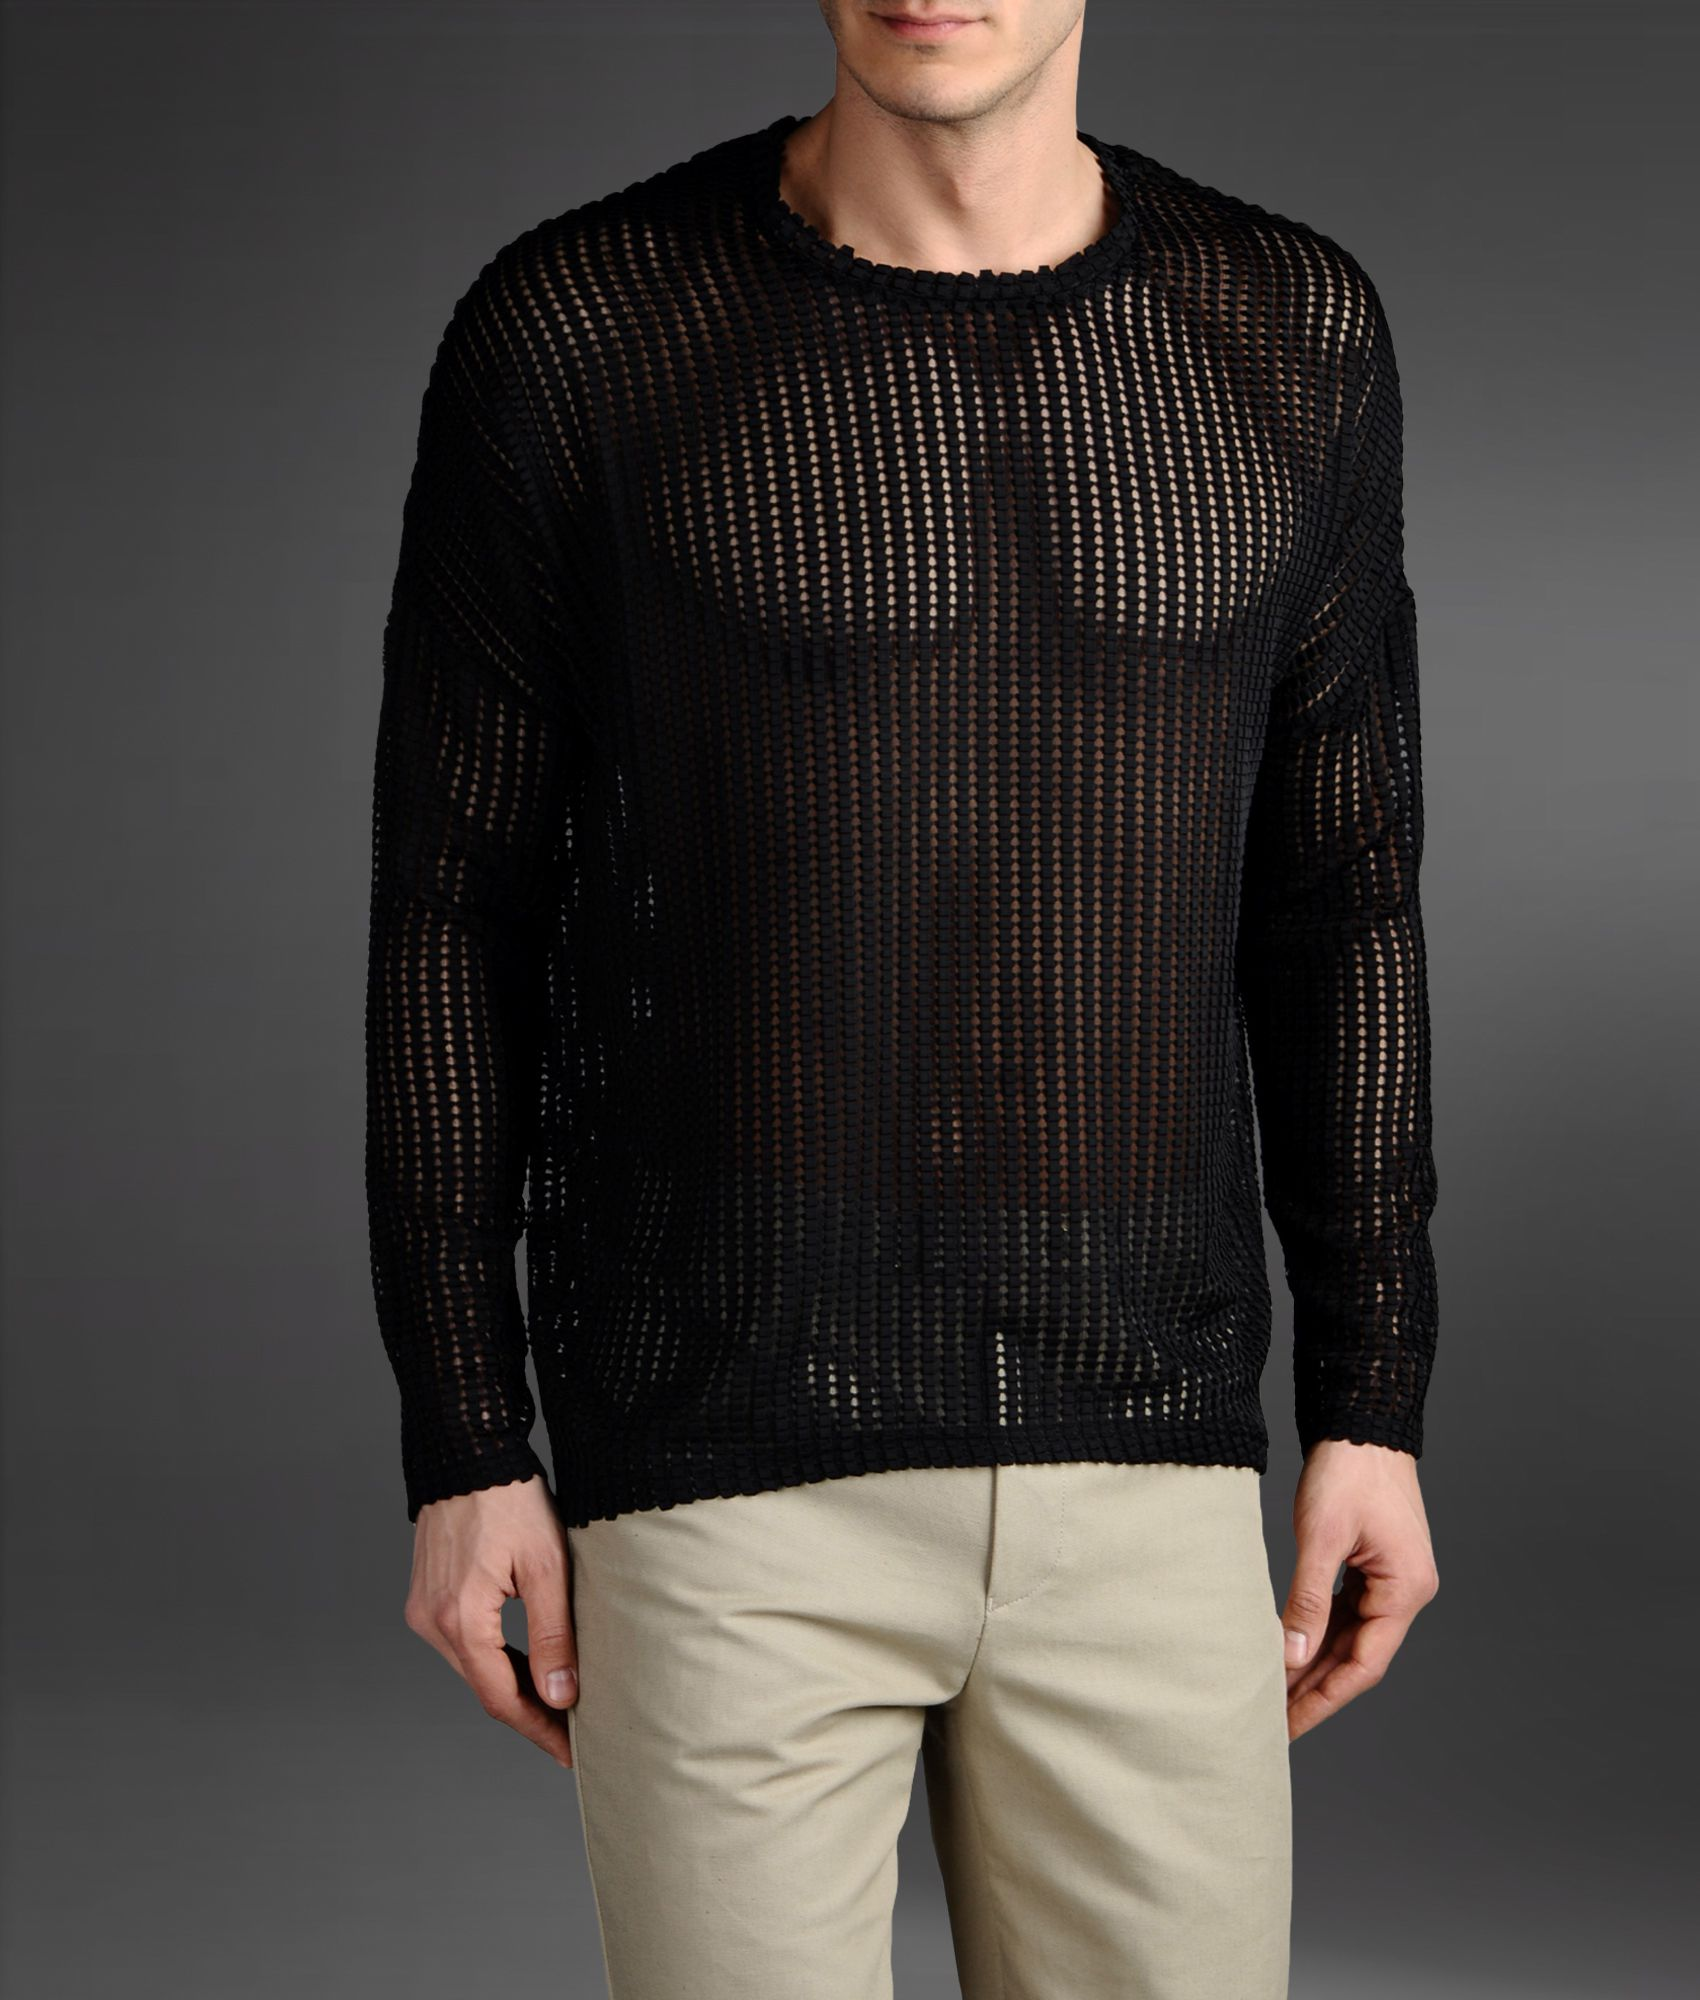 Emporio armani Origami Effect Mesh Sweater in Black for Men | Lyst